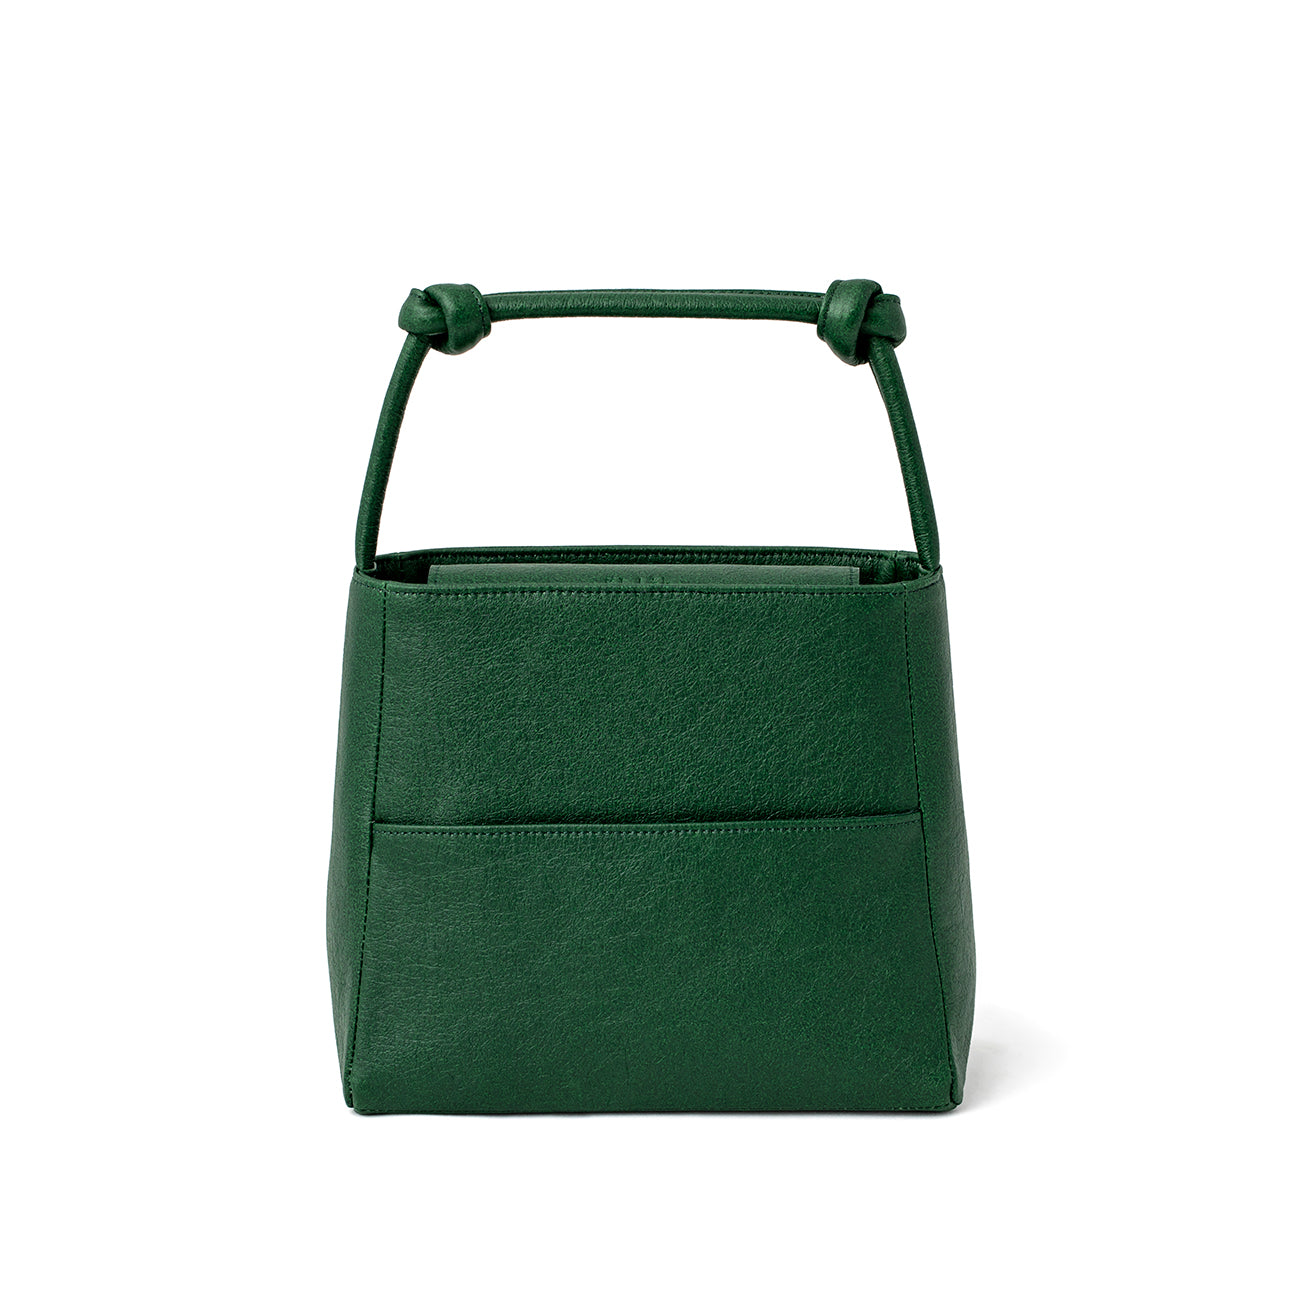 Kithara Square Bag in Dark Green